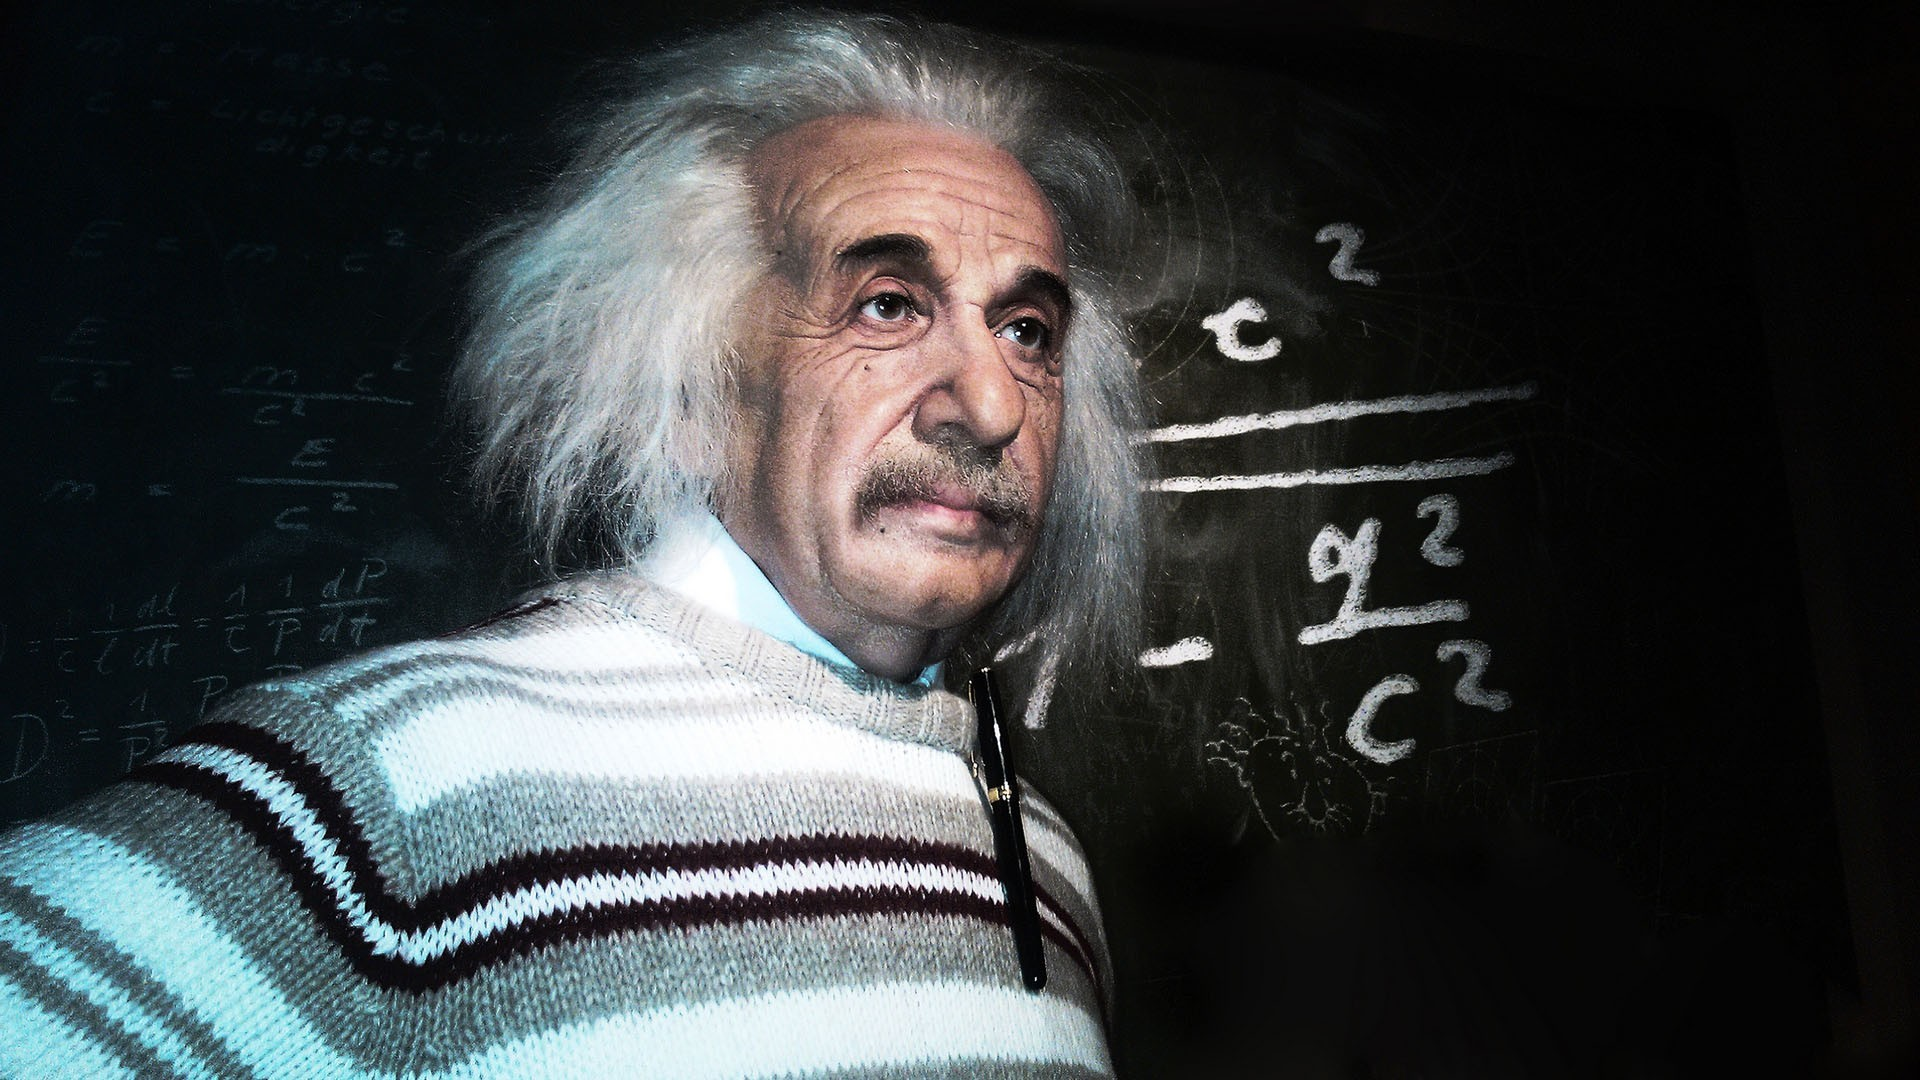 Wallpaperwiki Albert Einstein Wallpaper Download Free PIC